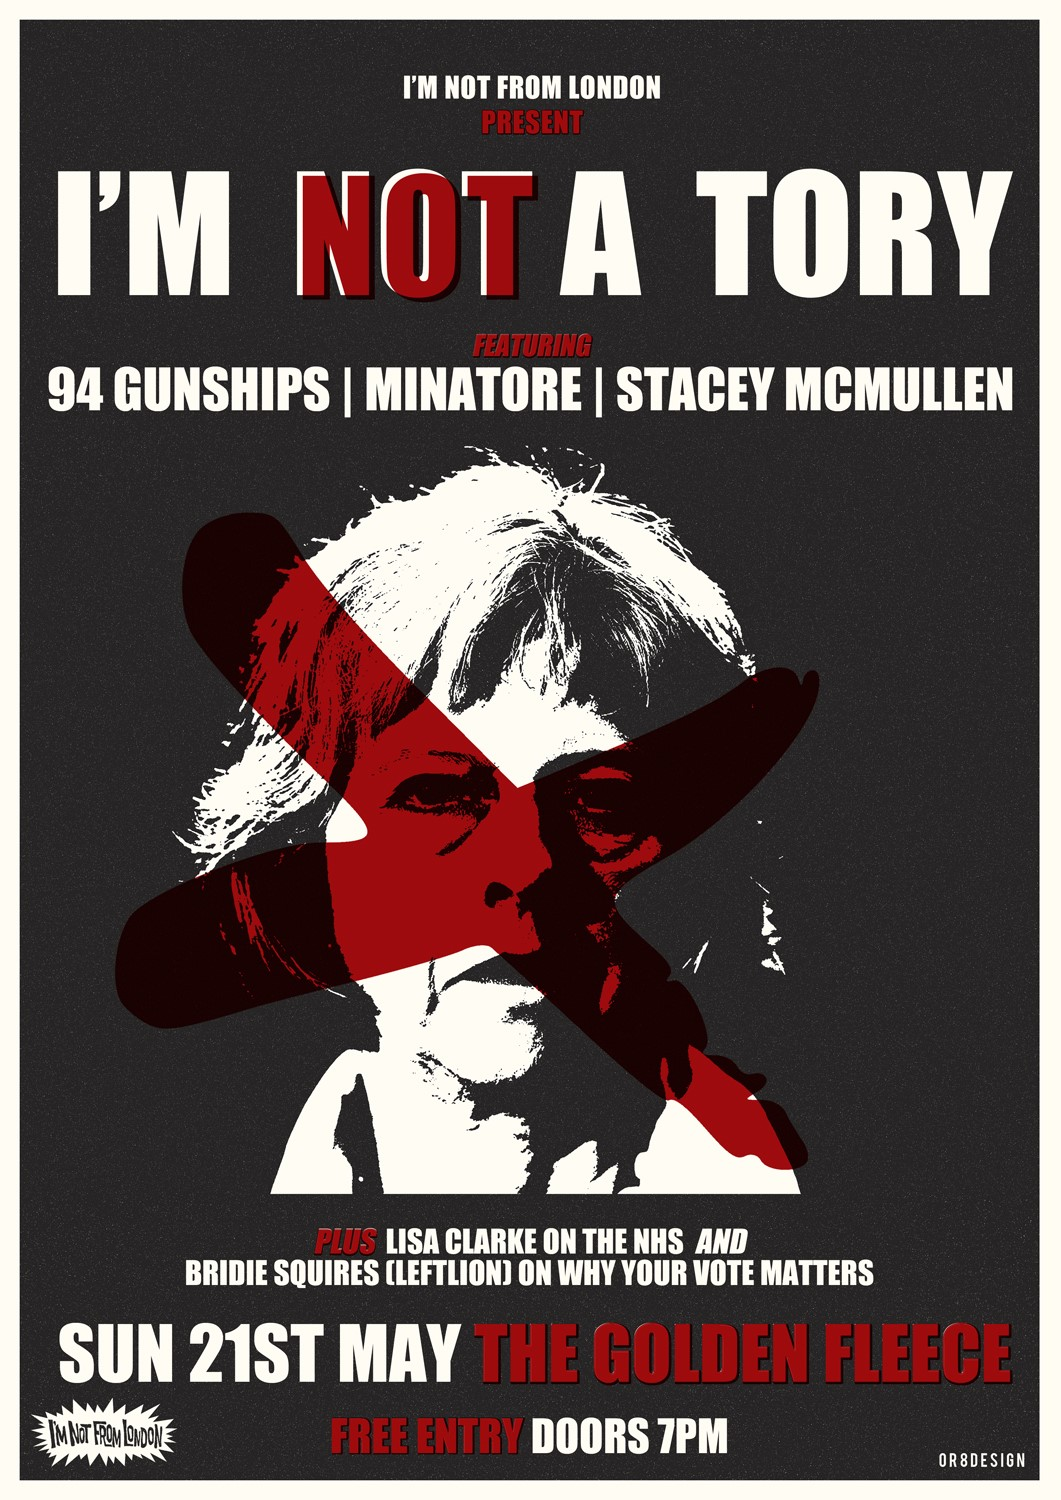 I'm Not A Tory - Register To Vote